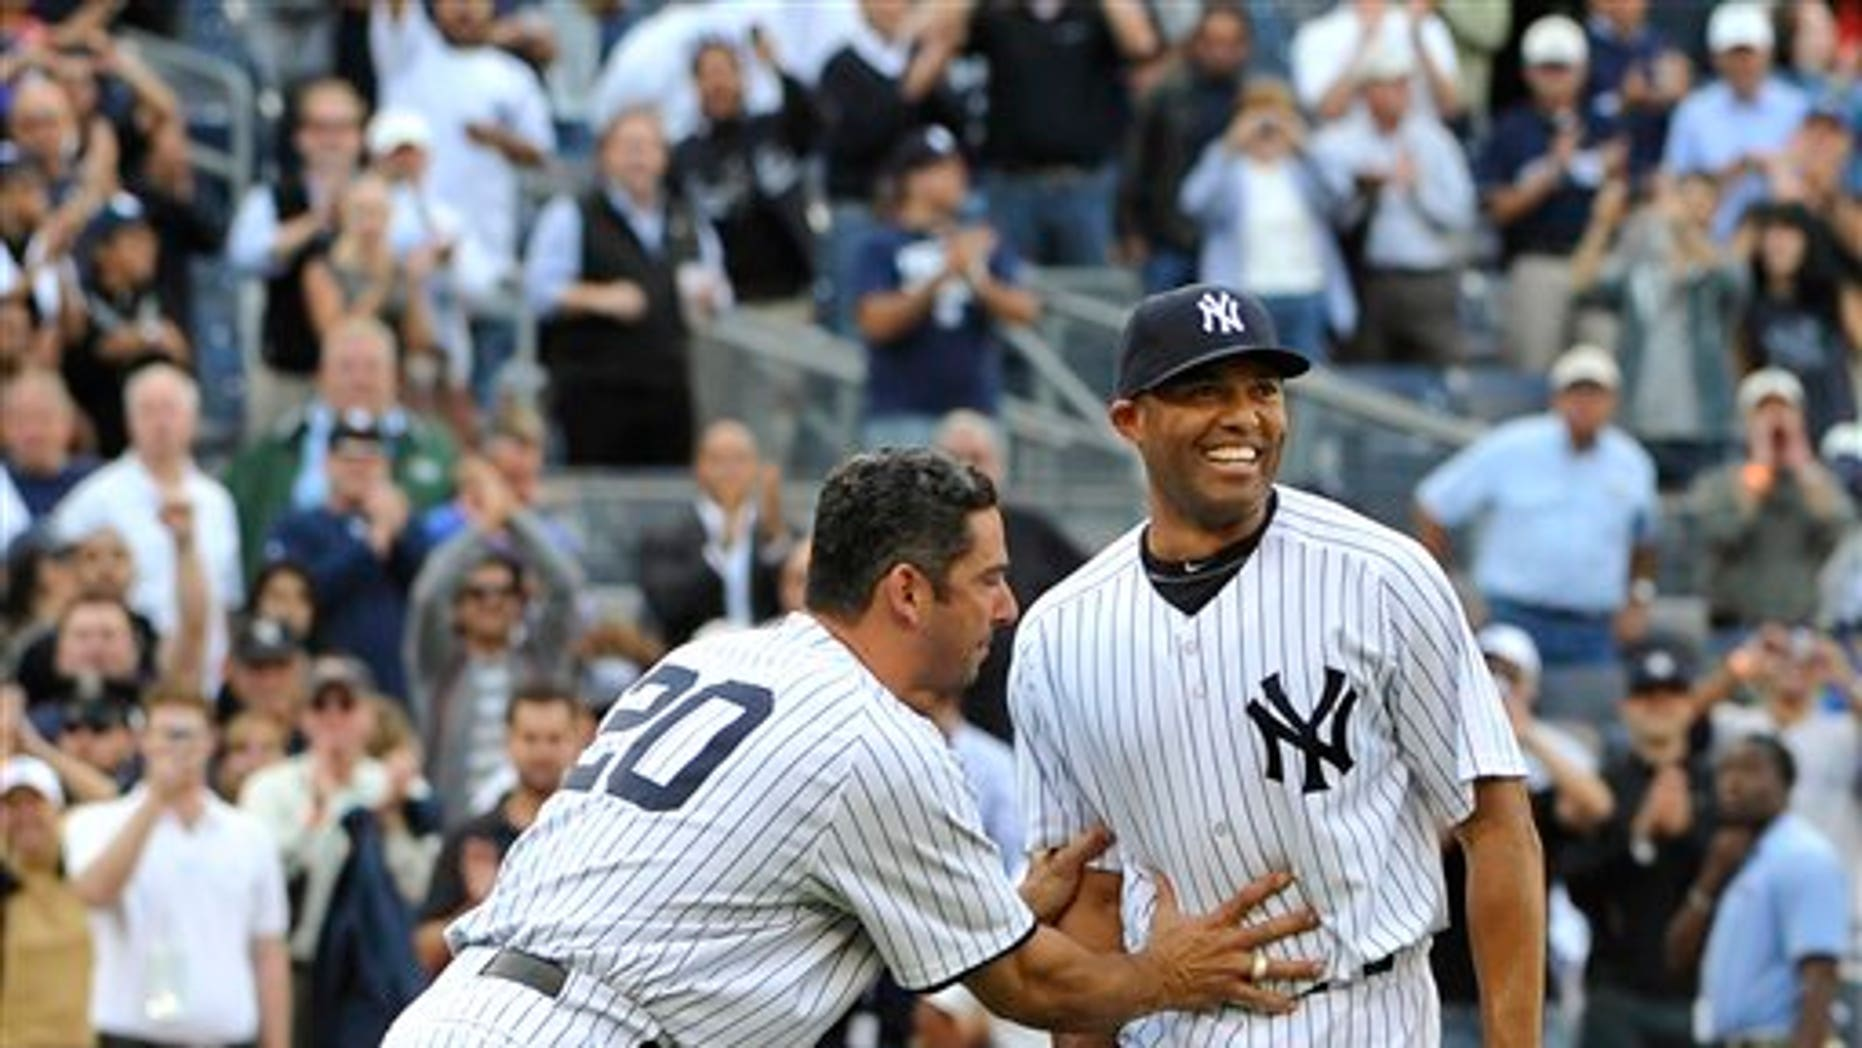 Sept 19: New York Yankees Jorge Posada pushes Mariano Rivera, right, back to the mound to acknowledge the cheers of the crowd after Rivera recorded his 602nd save as the Yankees beat the Minnesota Twins 6-4 on Monday, Sept. 19, 2011, at Yankee Stadium.